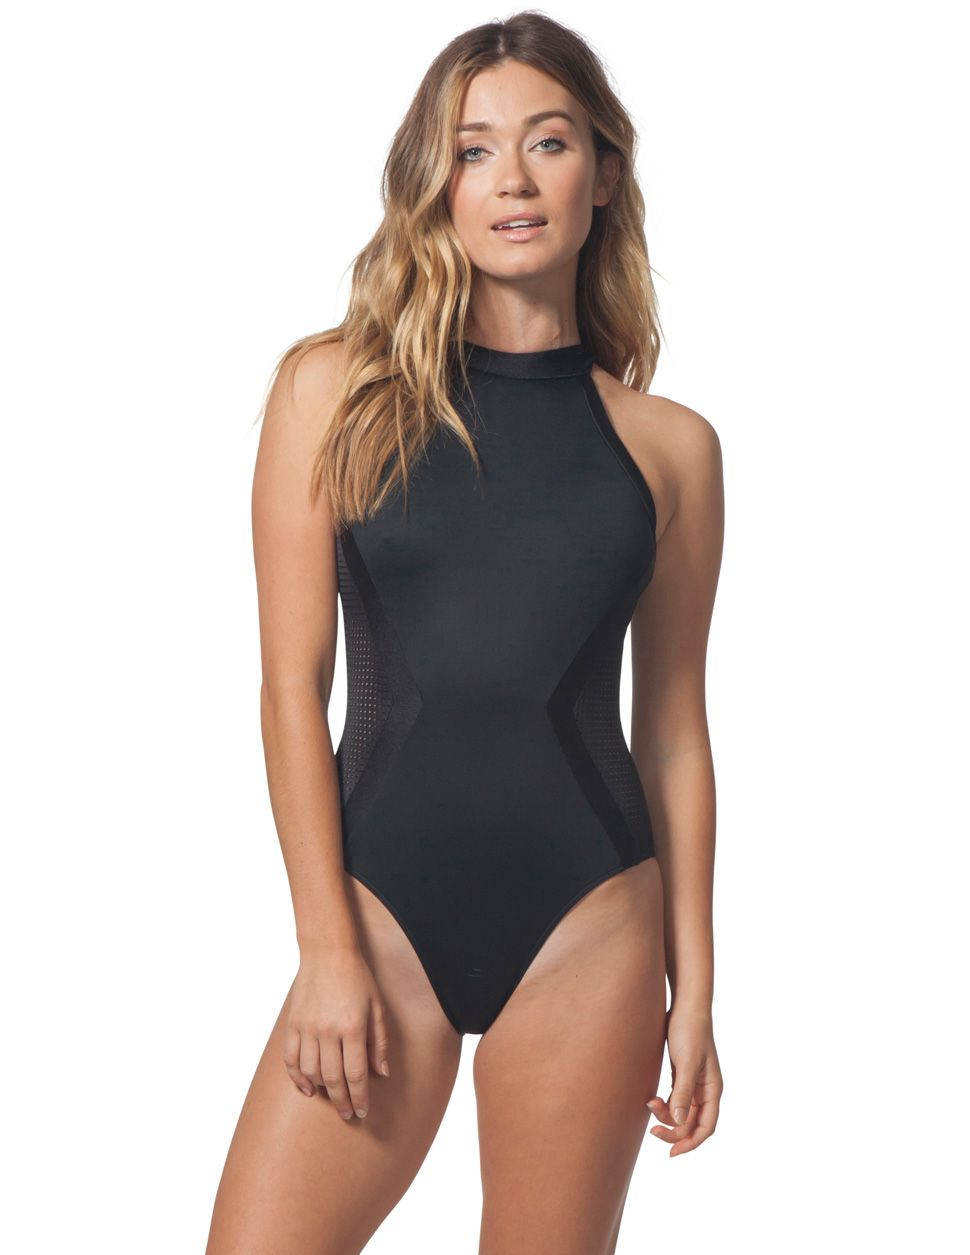 Rip Curl Womens One Piece Swimsuit